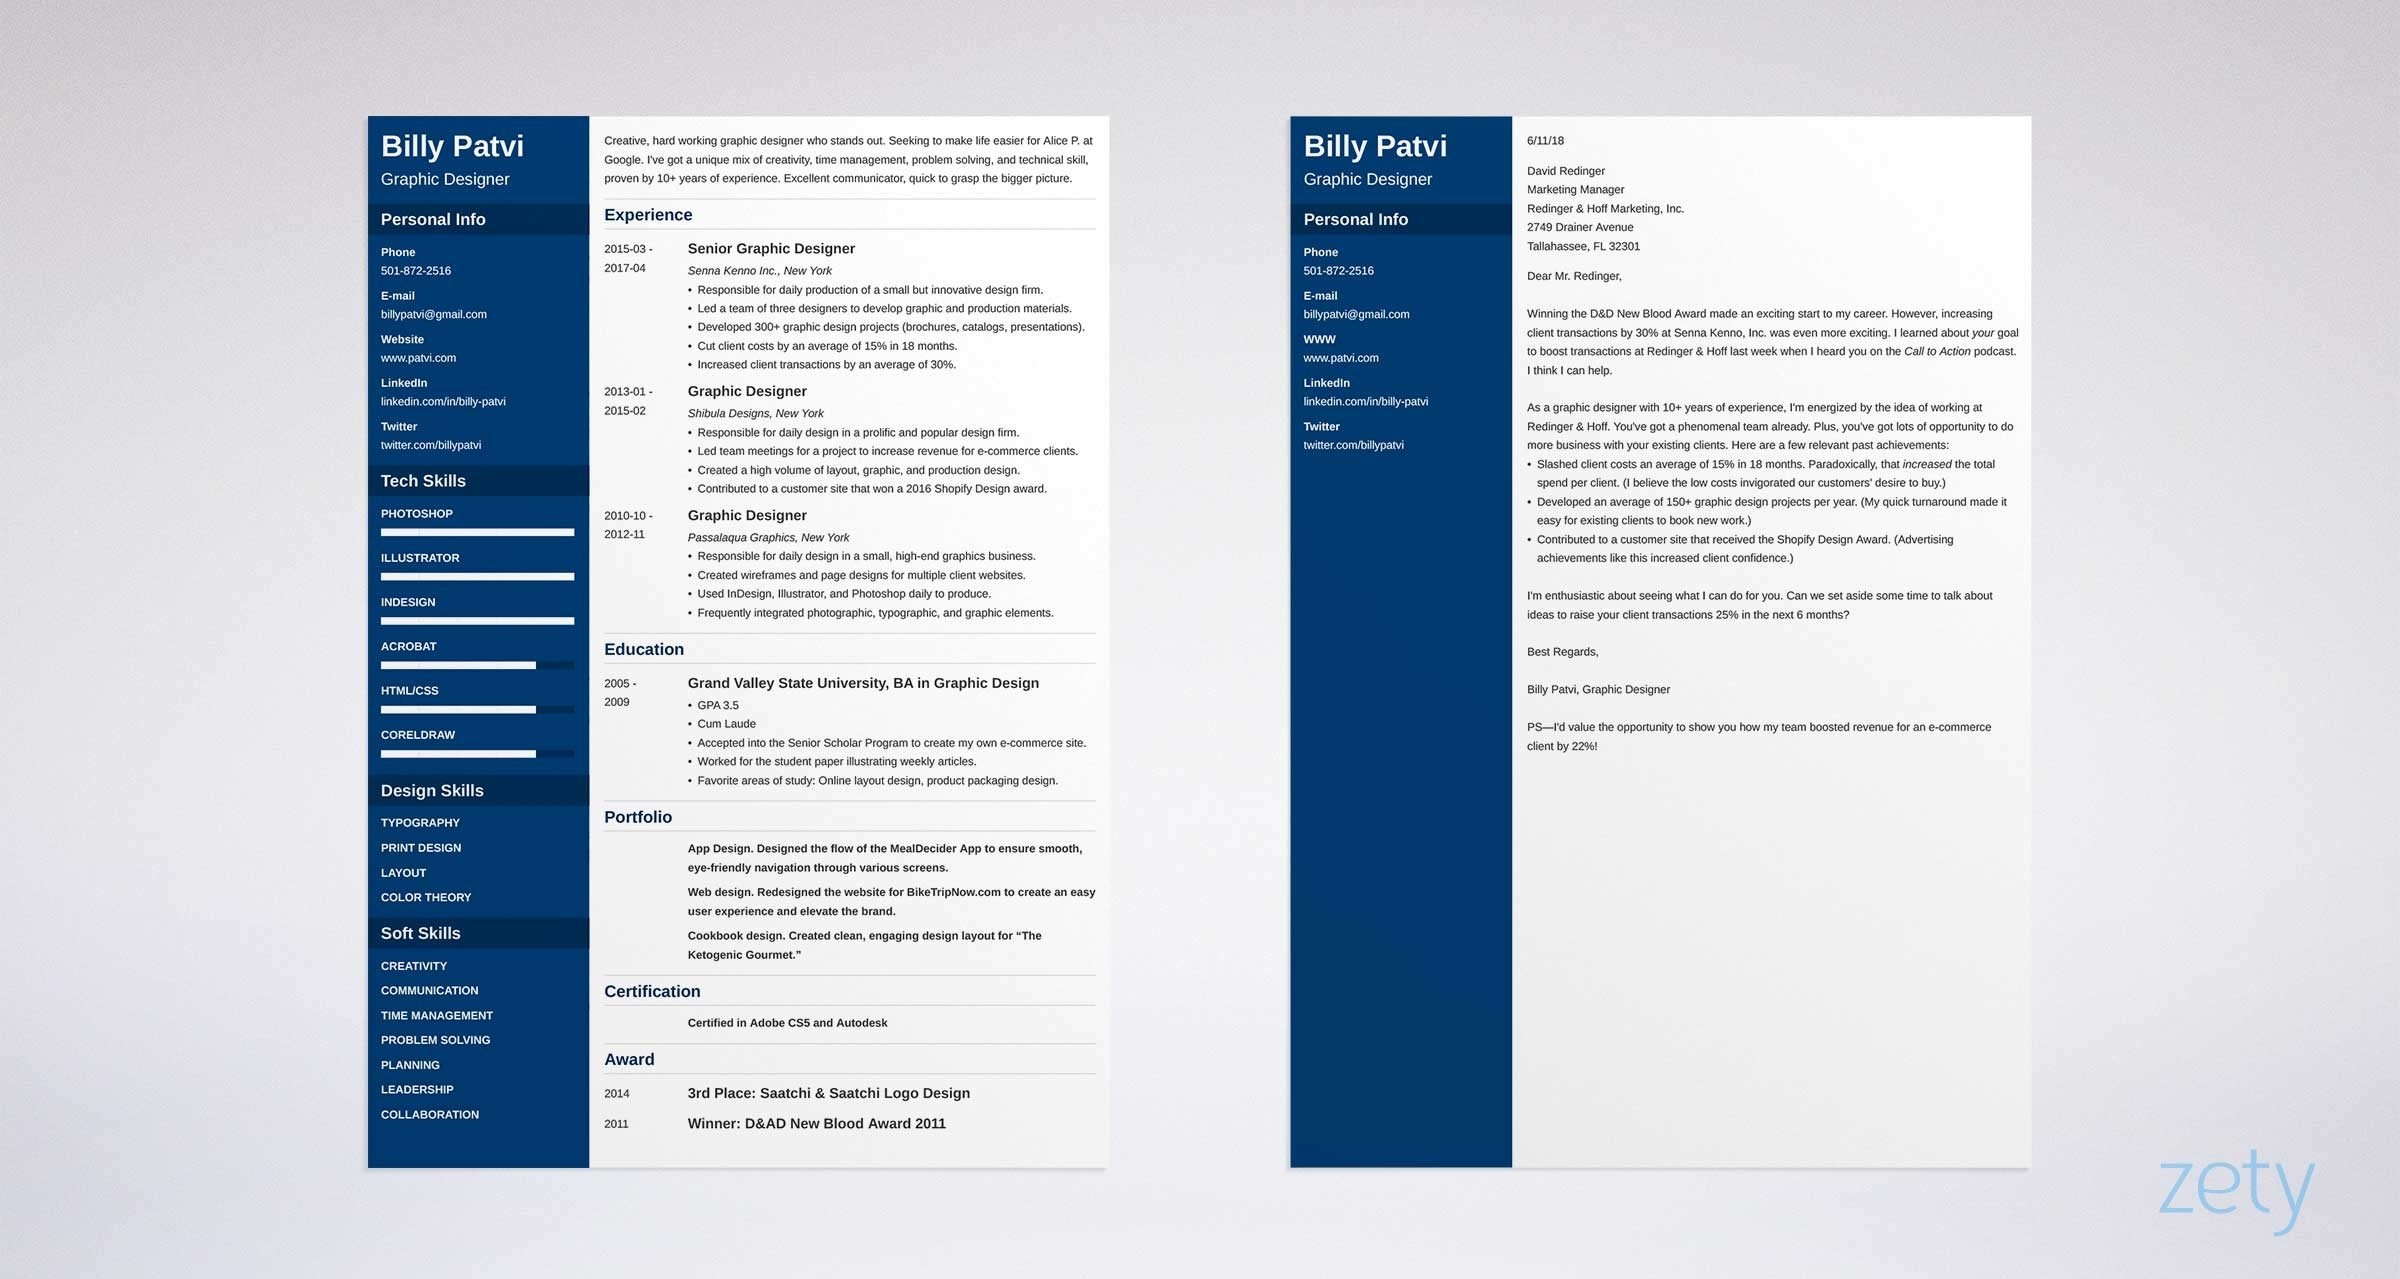 Resume Font Amazing Best Font For A Resume What Size Typeface To Use [48 Pro Tips]